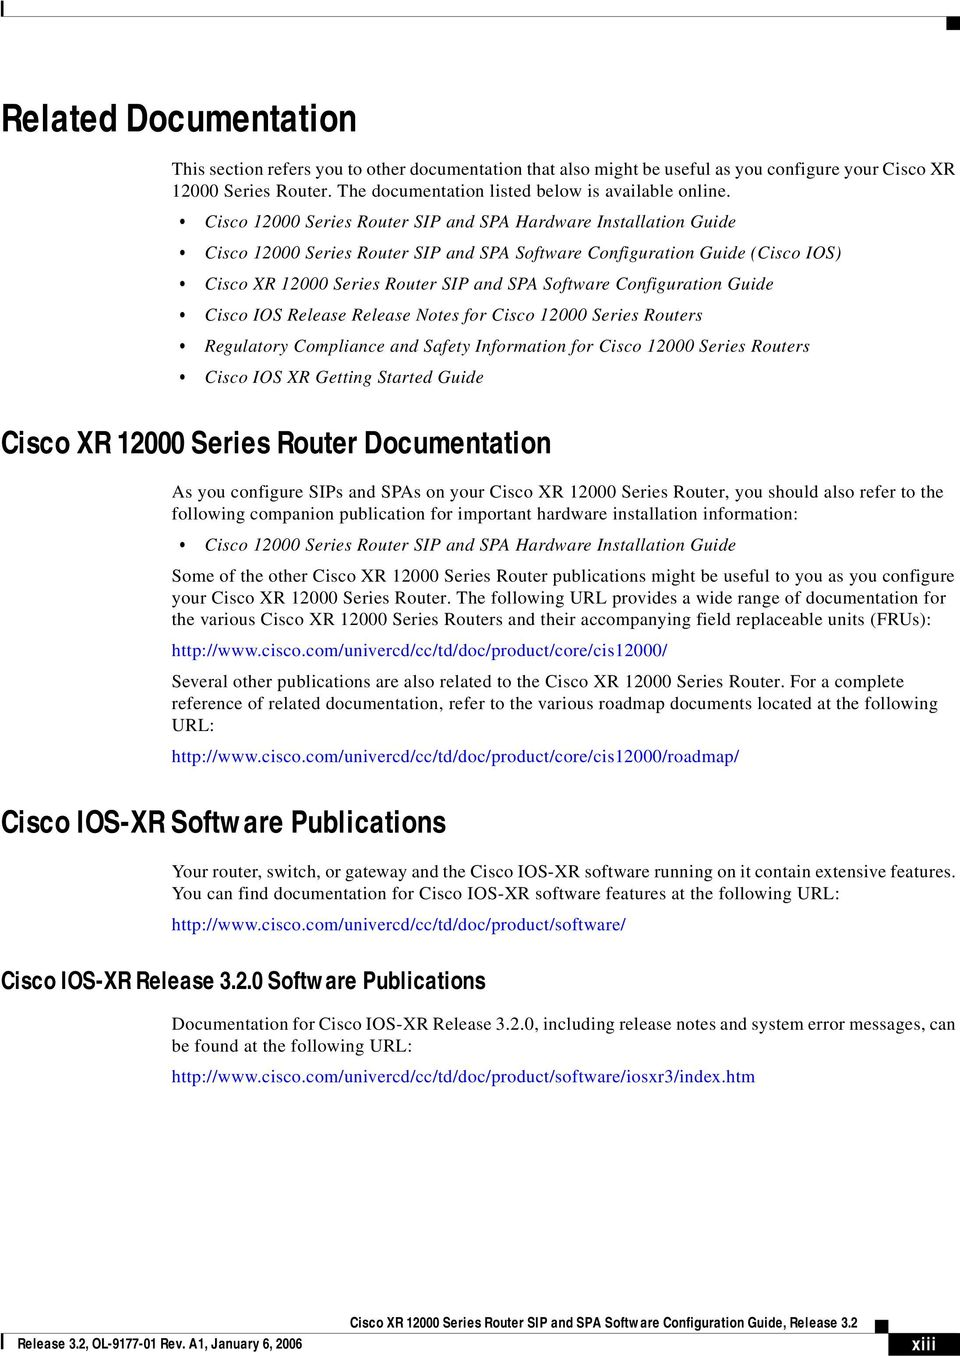 Cisco XR Series Router SIP and SPA Software Configuration